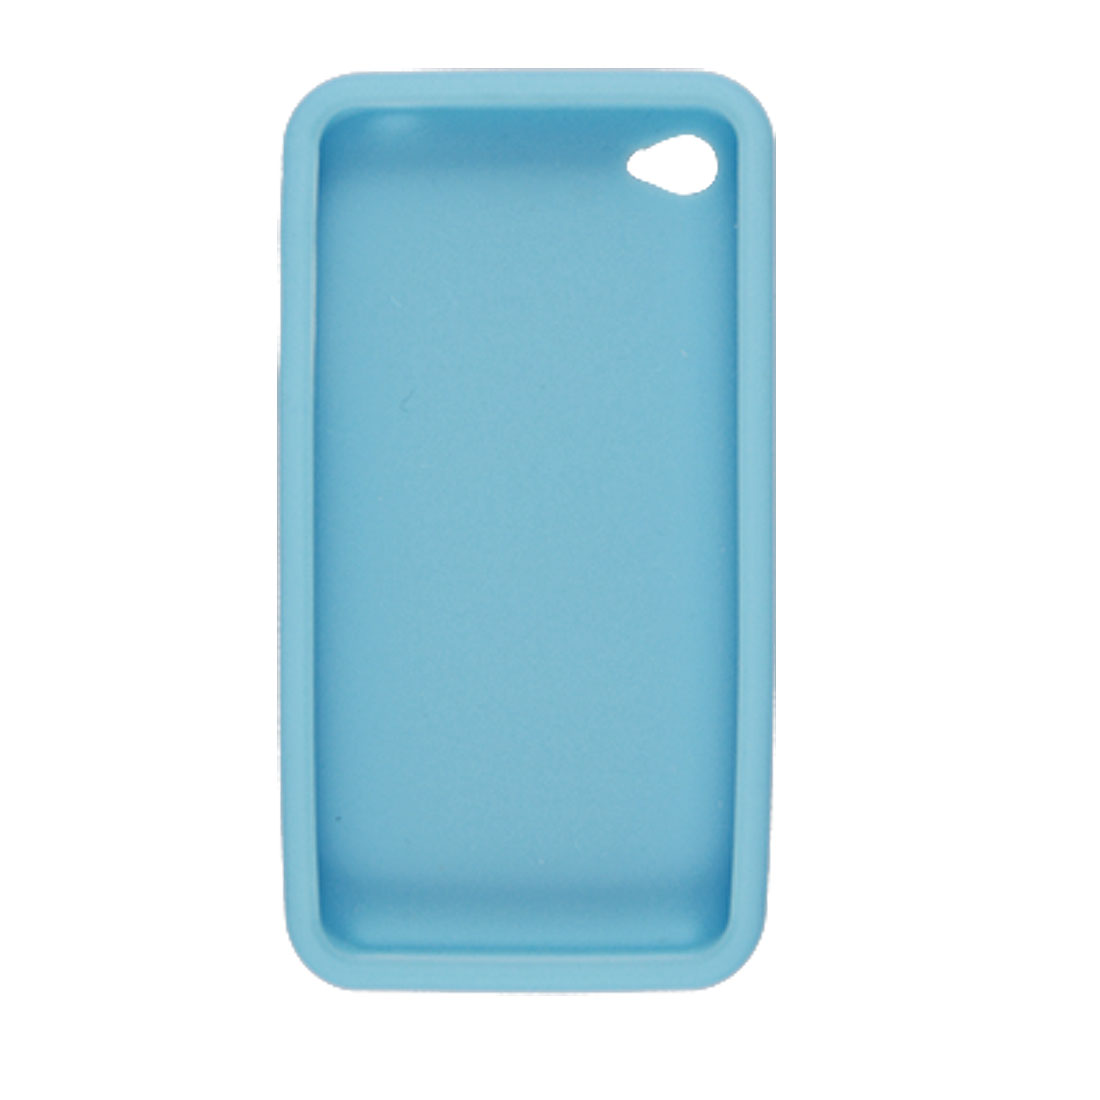 Sky Blue Silicone Skin Cover + Screen Guard for Apple iPhone 4